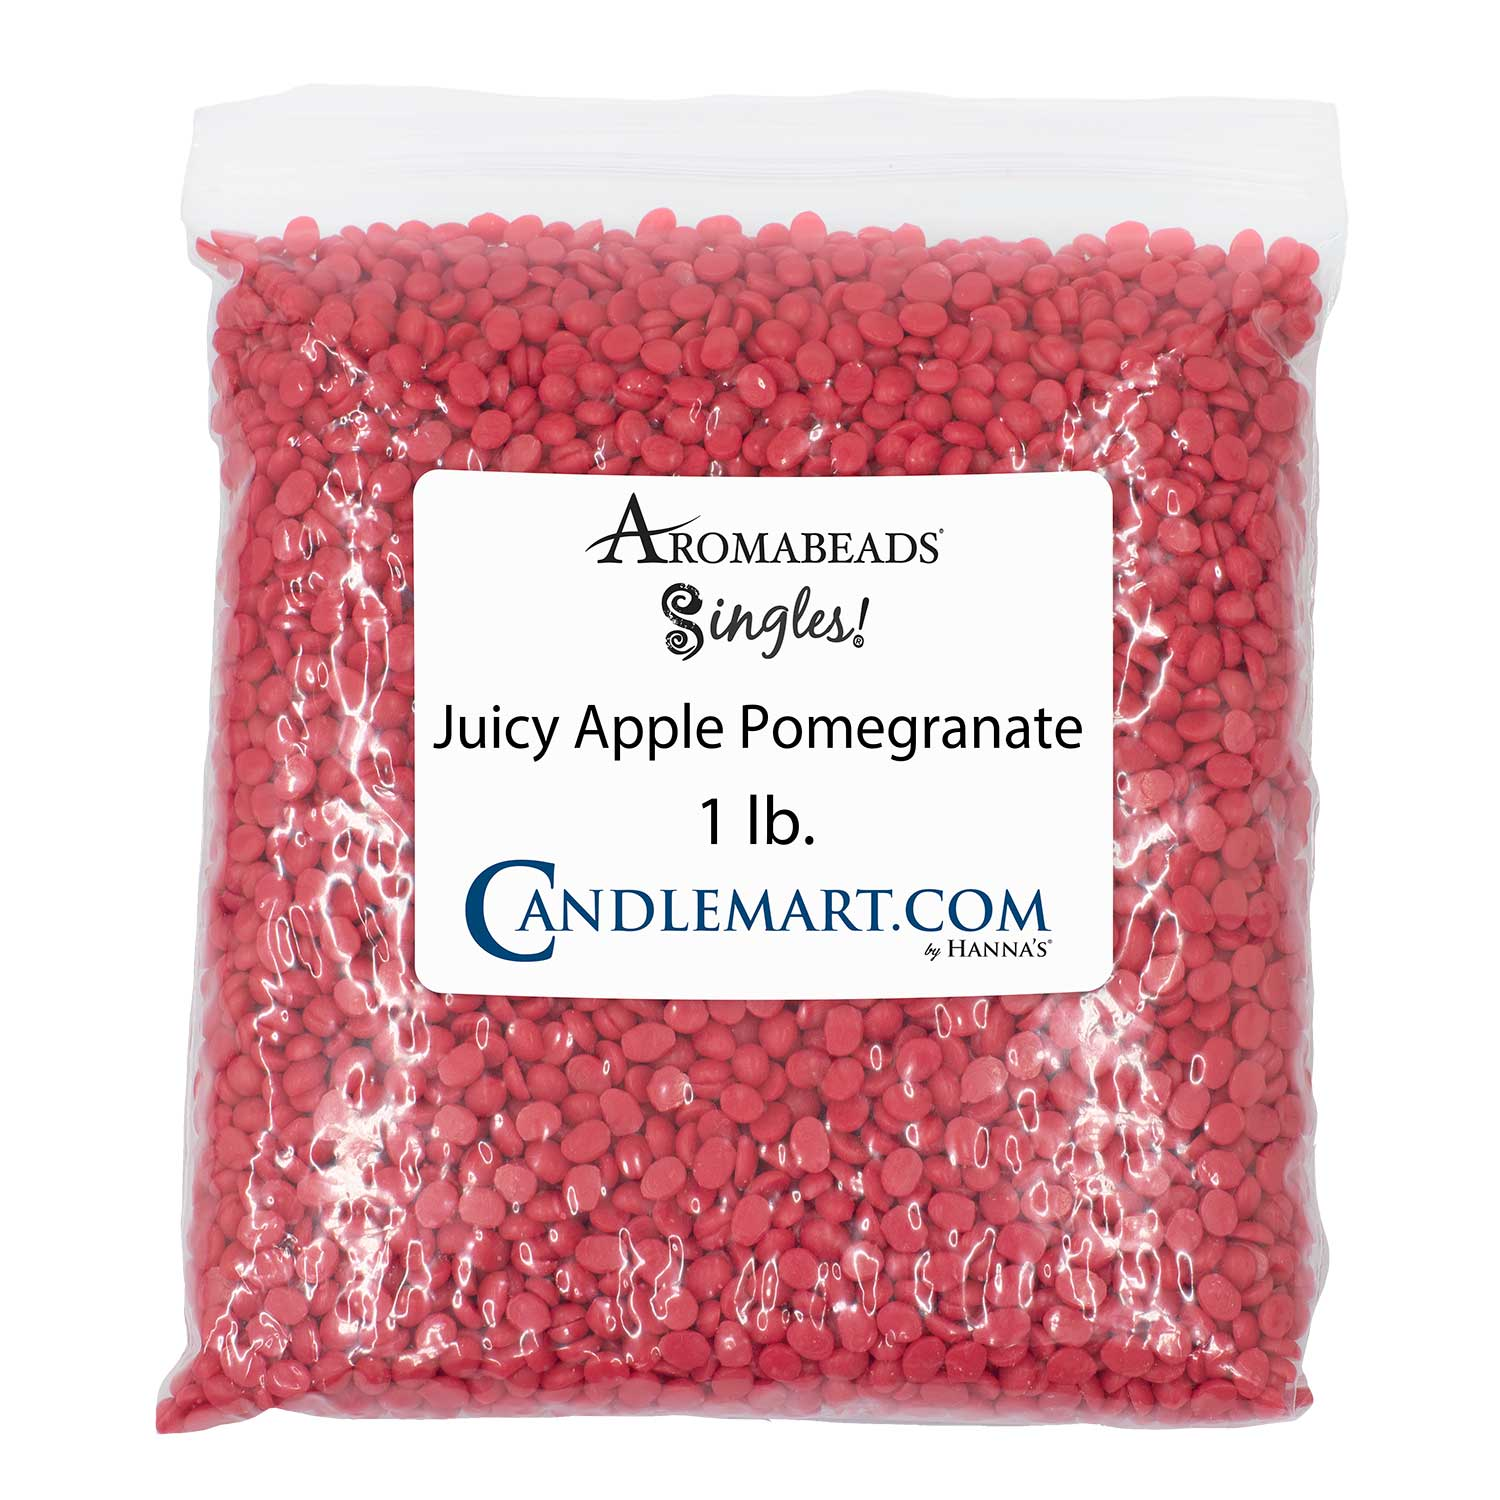 Aromabeads Singles Juicy Apple Pomegranate Bulk Wax Beads Melts Candlemart.com $ 9.99